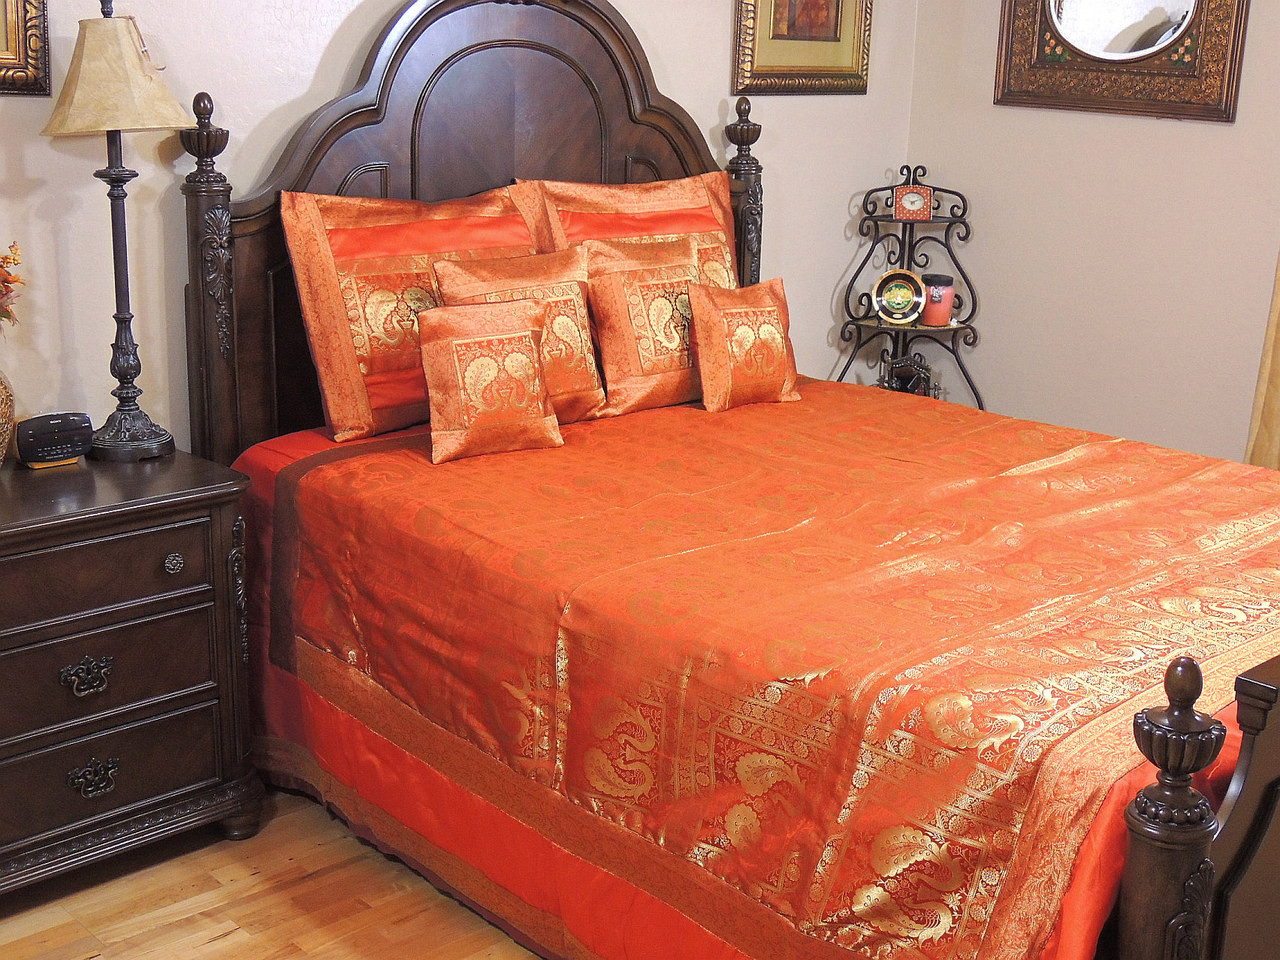 info burnt queen duvet single ruffle size cotton page twin beautiful orange sateen full kohphiphi cover